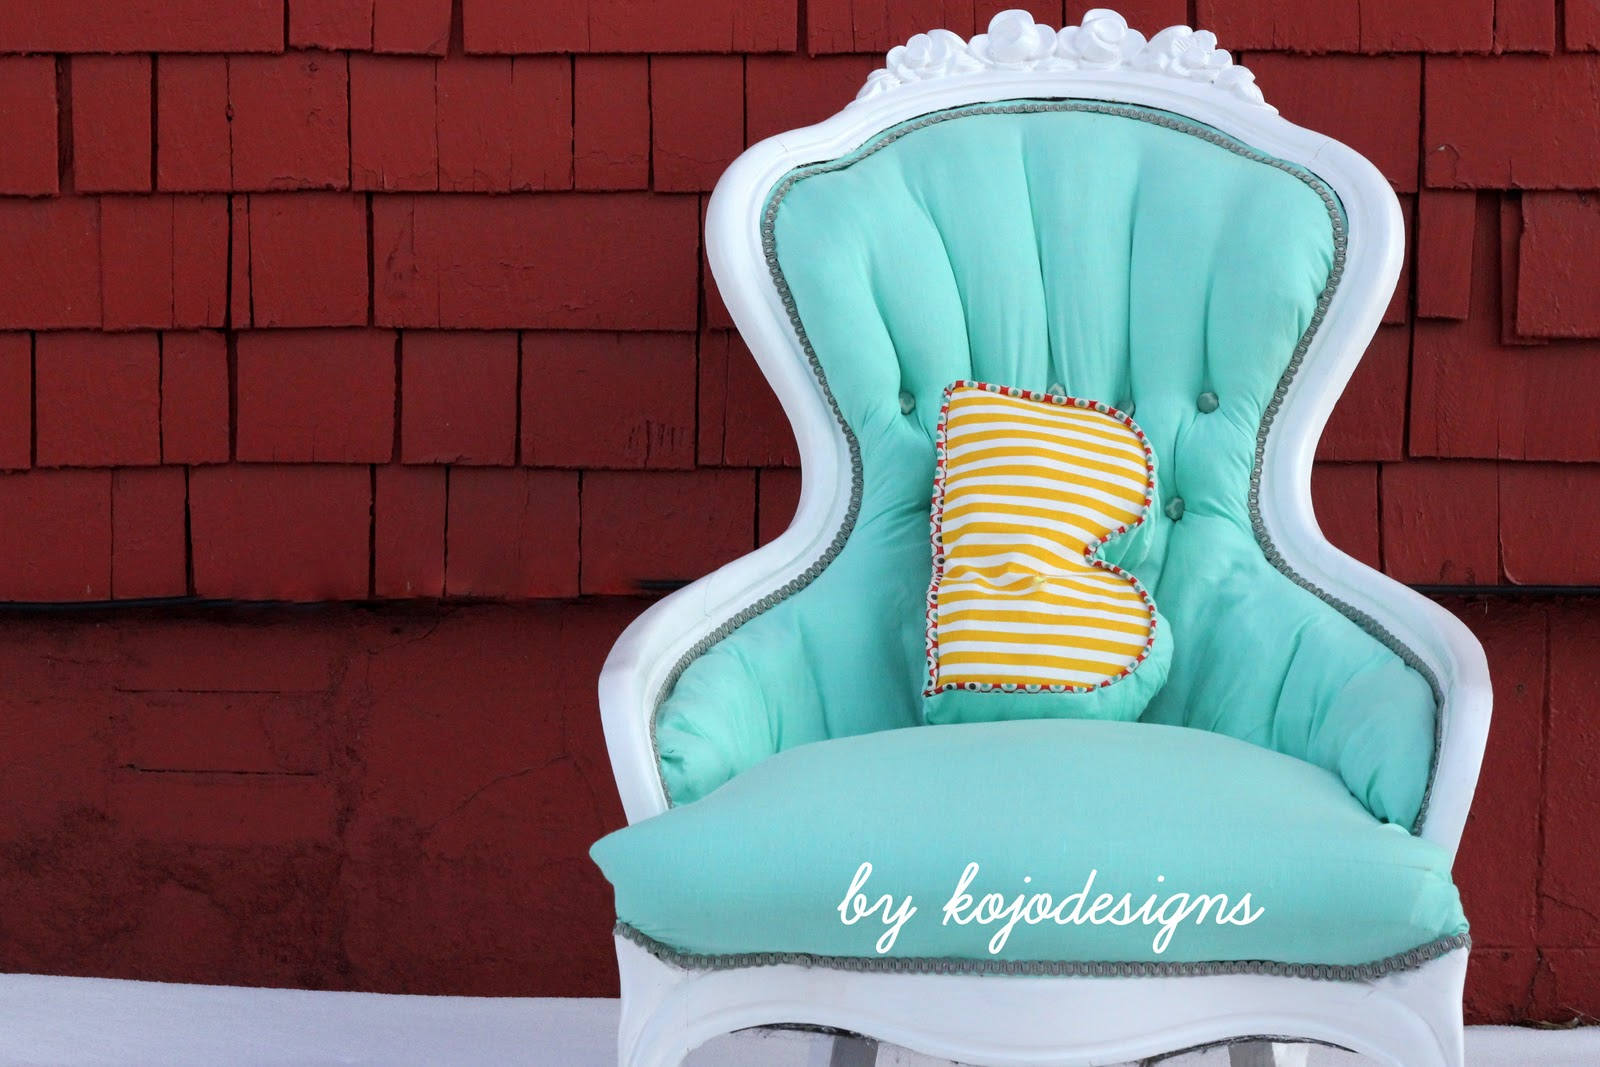 Reupholster Chair Aqua Chair Redo Tutorial How To Reupholster A Tufted Chair